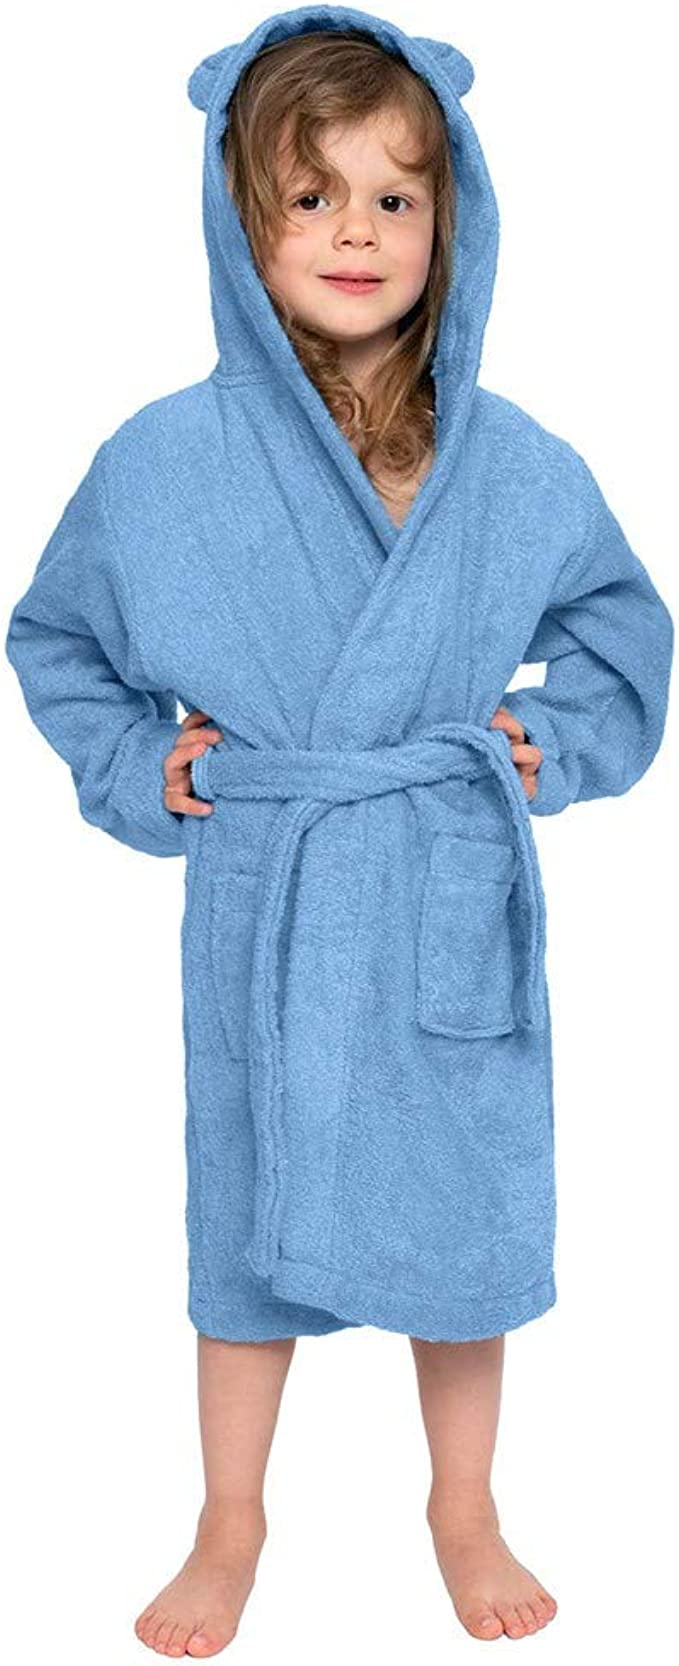 Plush Flannel Robes Long Hooded Bathrobes Pajamas Night Gown for Baby Boys Girls Kids Age 1-8 Transer